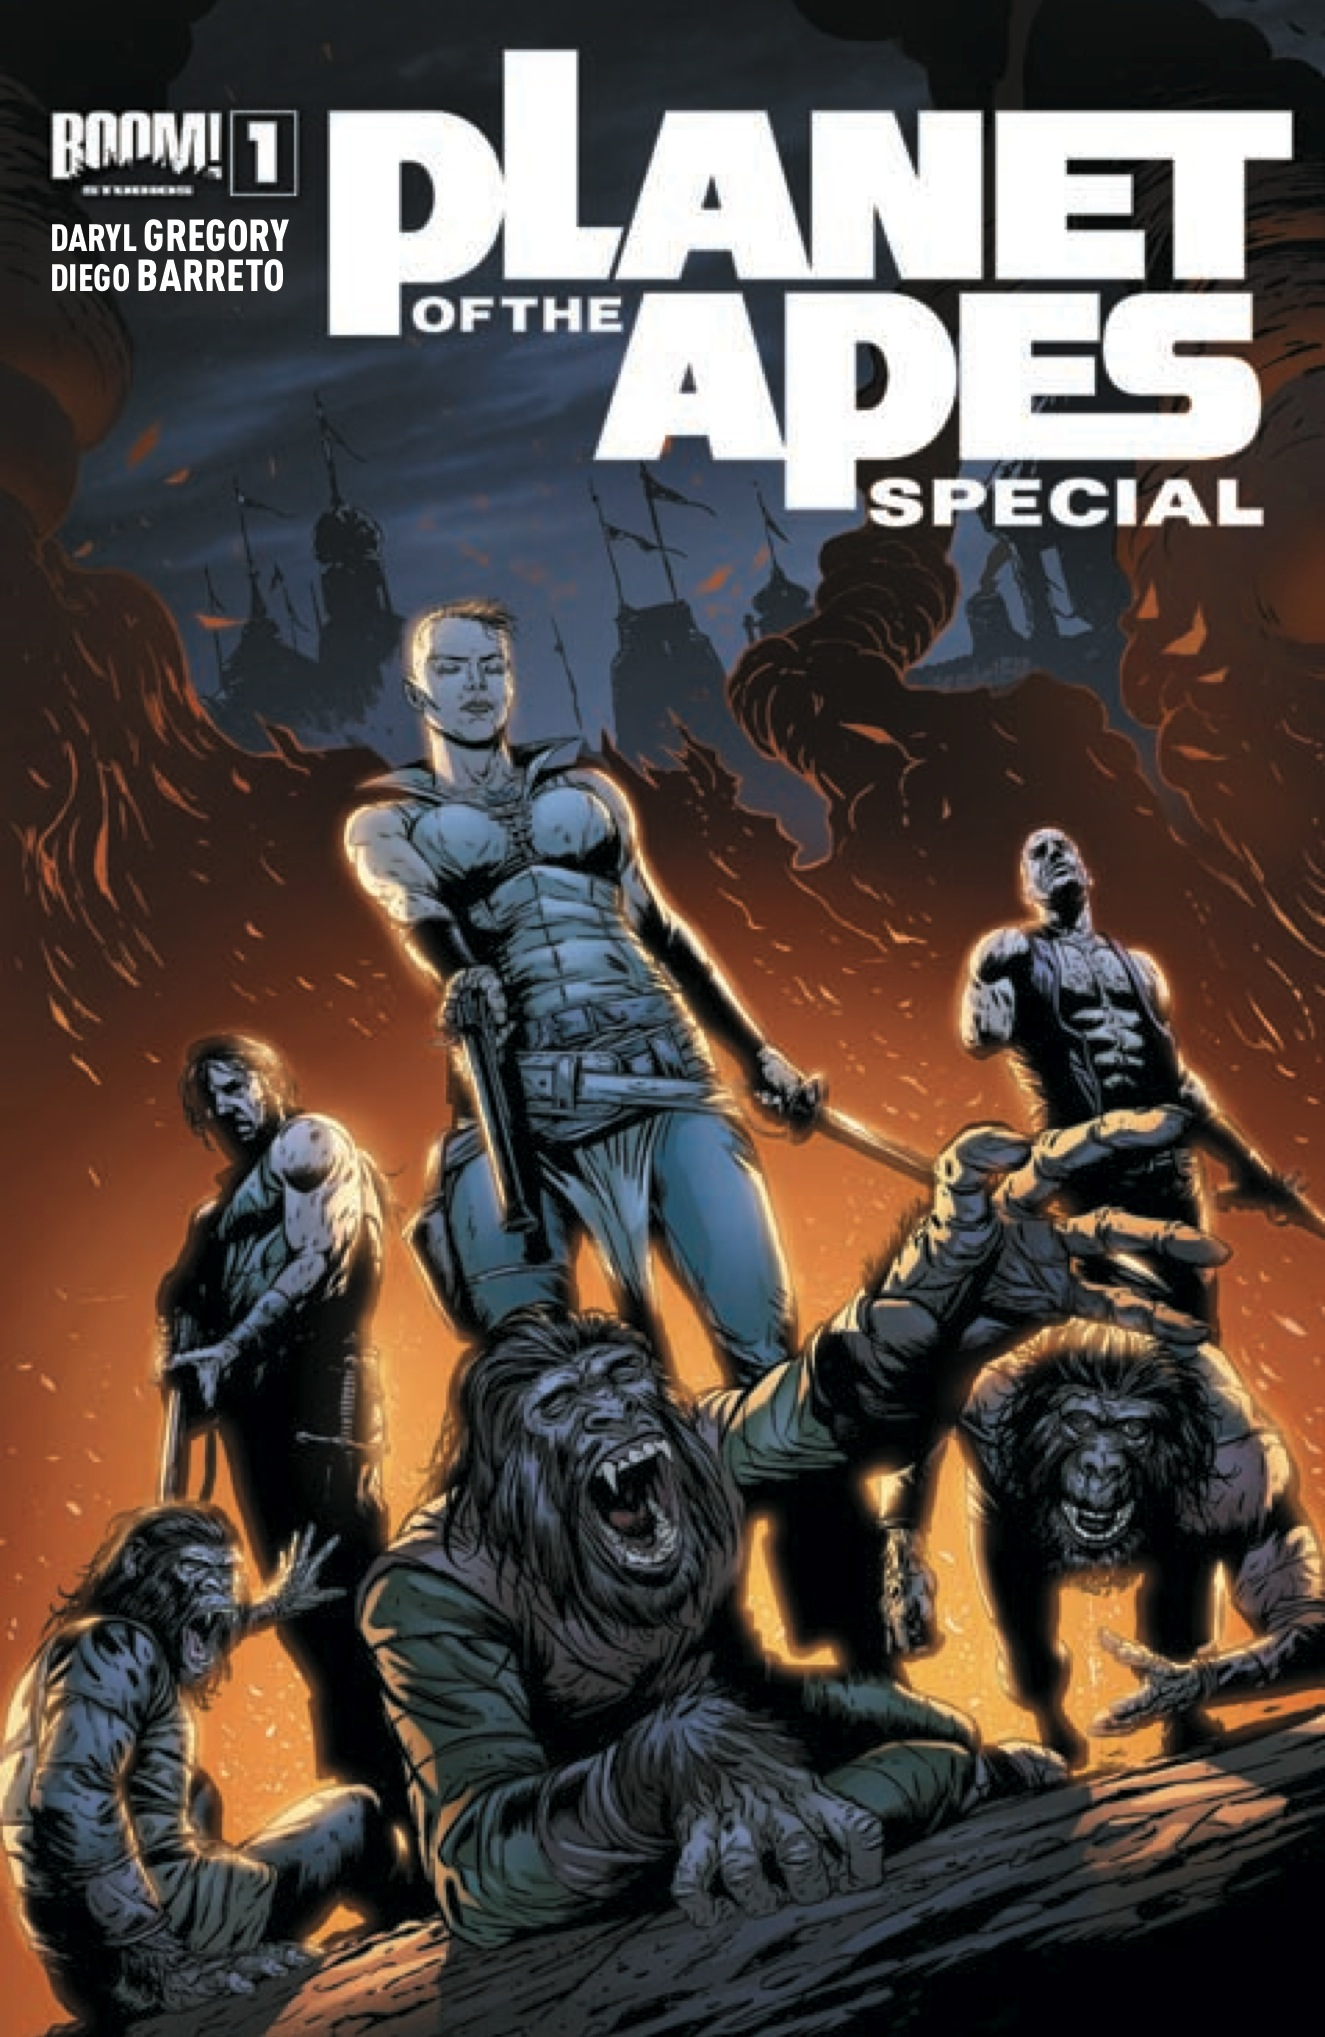 a review of the science fiction planet of the apes Despite another great performance by serkis, dawn of the planet of the apes lack of depth and originality makes it the weakest movie in the apes franchise.